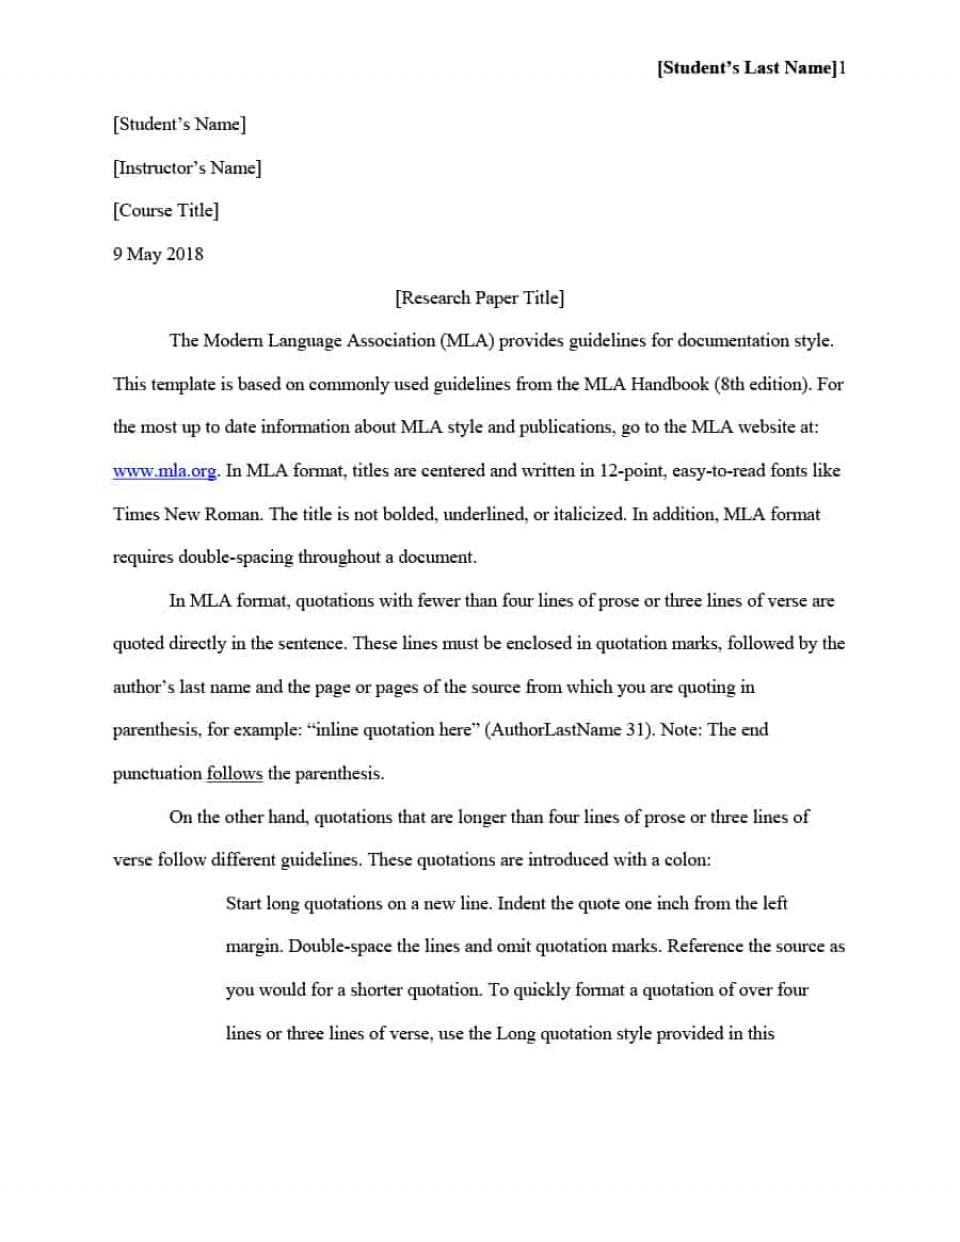 005 Essay Example Mla Format Template Stirring Citation With Cover Page Purdue Owl 960